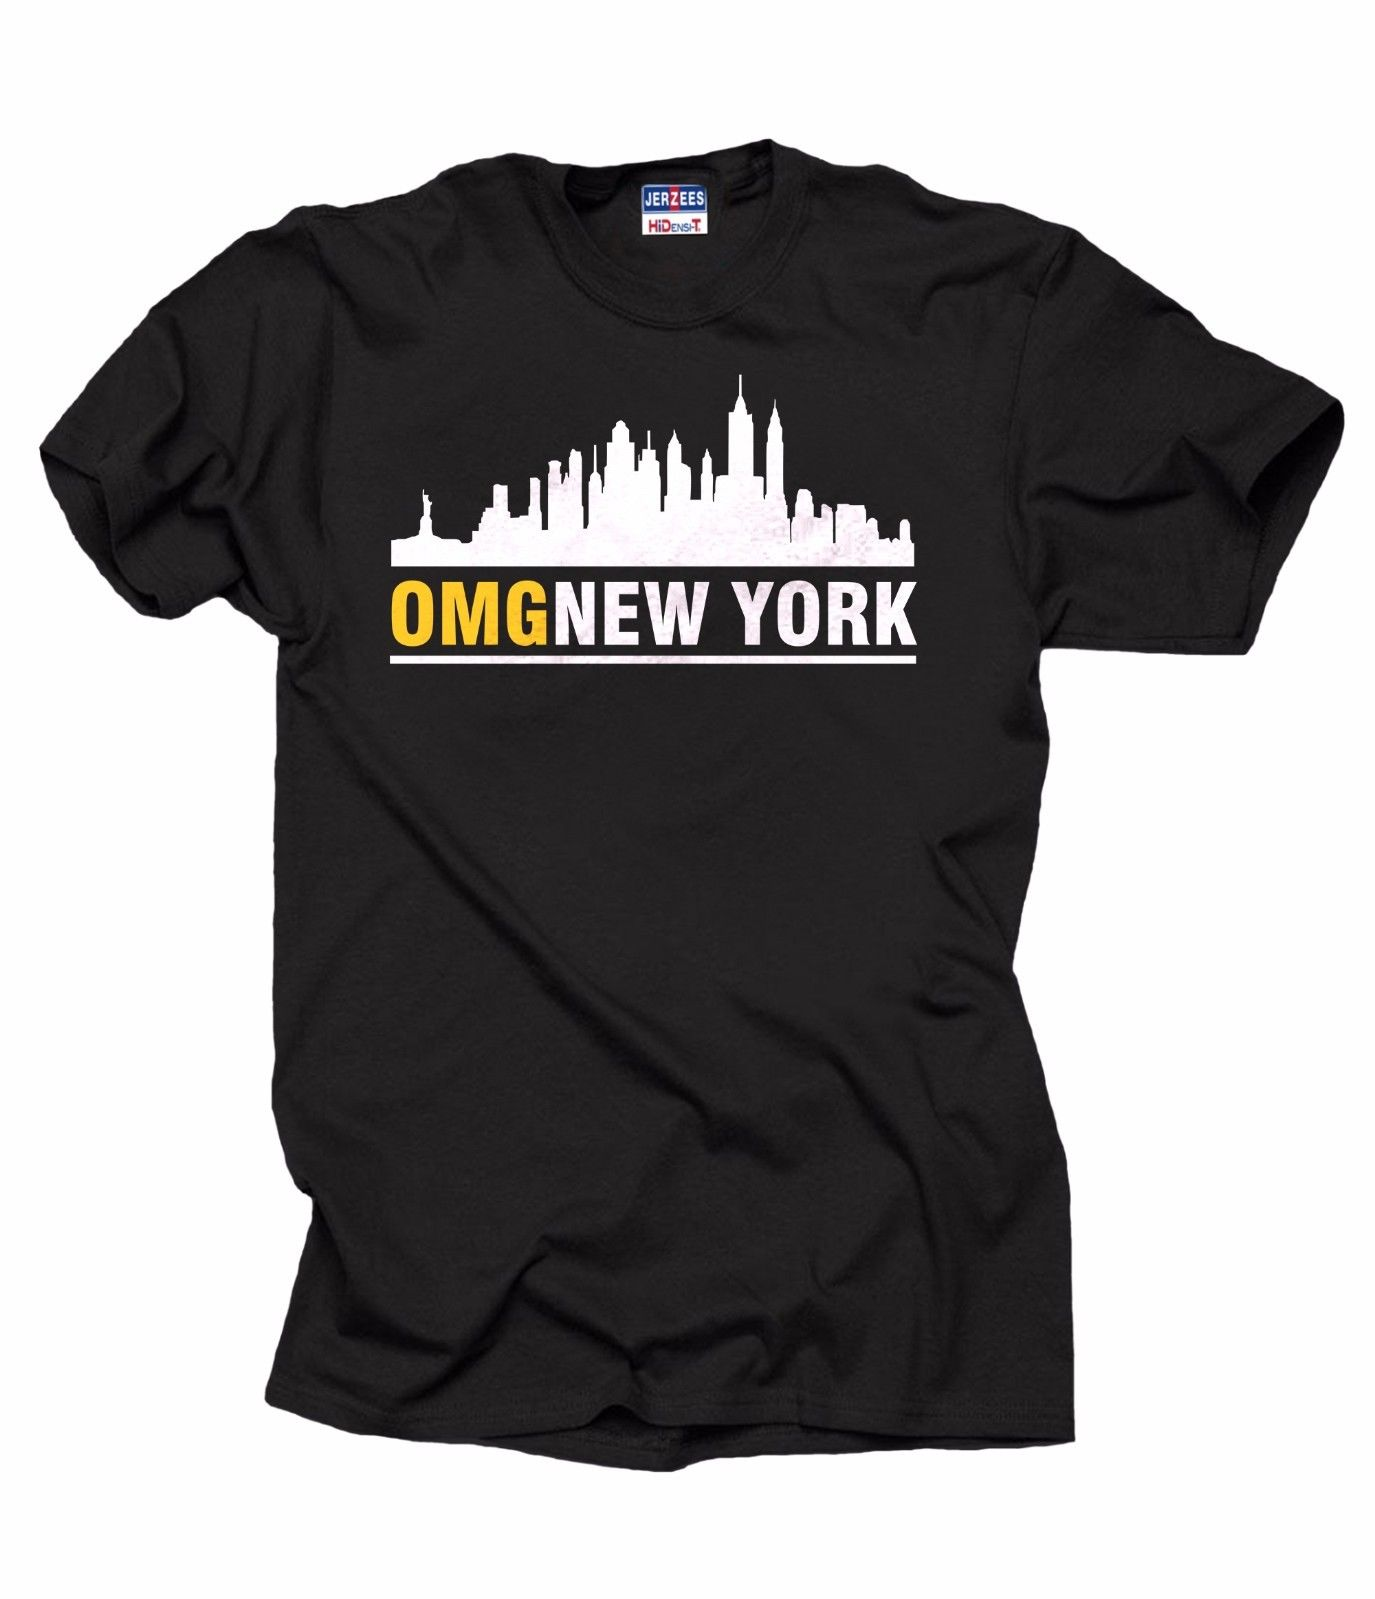 New York T-<font><b>Shirt</b></font> <font><b>I</b></font> <font><b>Love</b></font> New York Tee <font><b>Shirt</b></font> <font><b>NY</b></font> <font><b>Shirt</b></font> Cool Casual pride t <font><b>shirt</b></font> men Unisex Fashion tshirt free shipping funny image